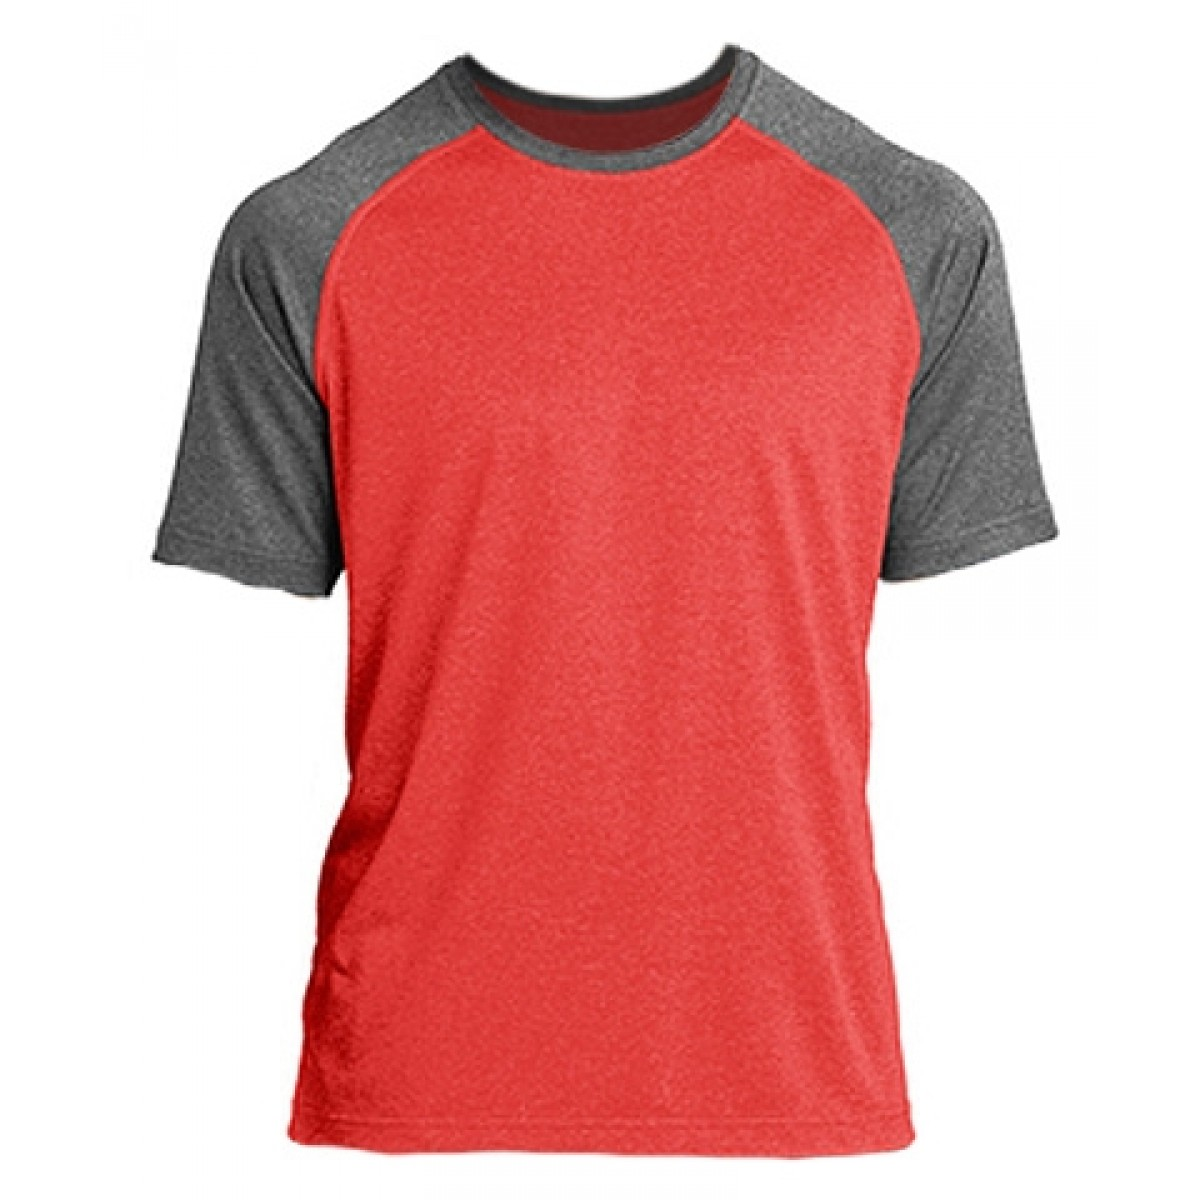 Heather on Heather Dri-Fit Tee-Heathered Red-XS